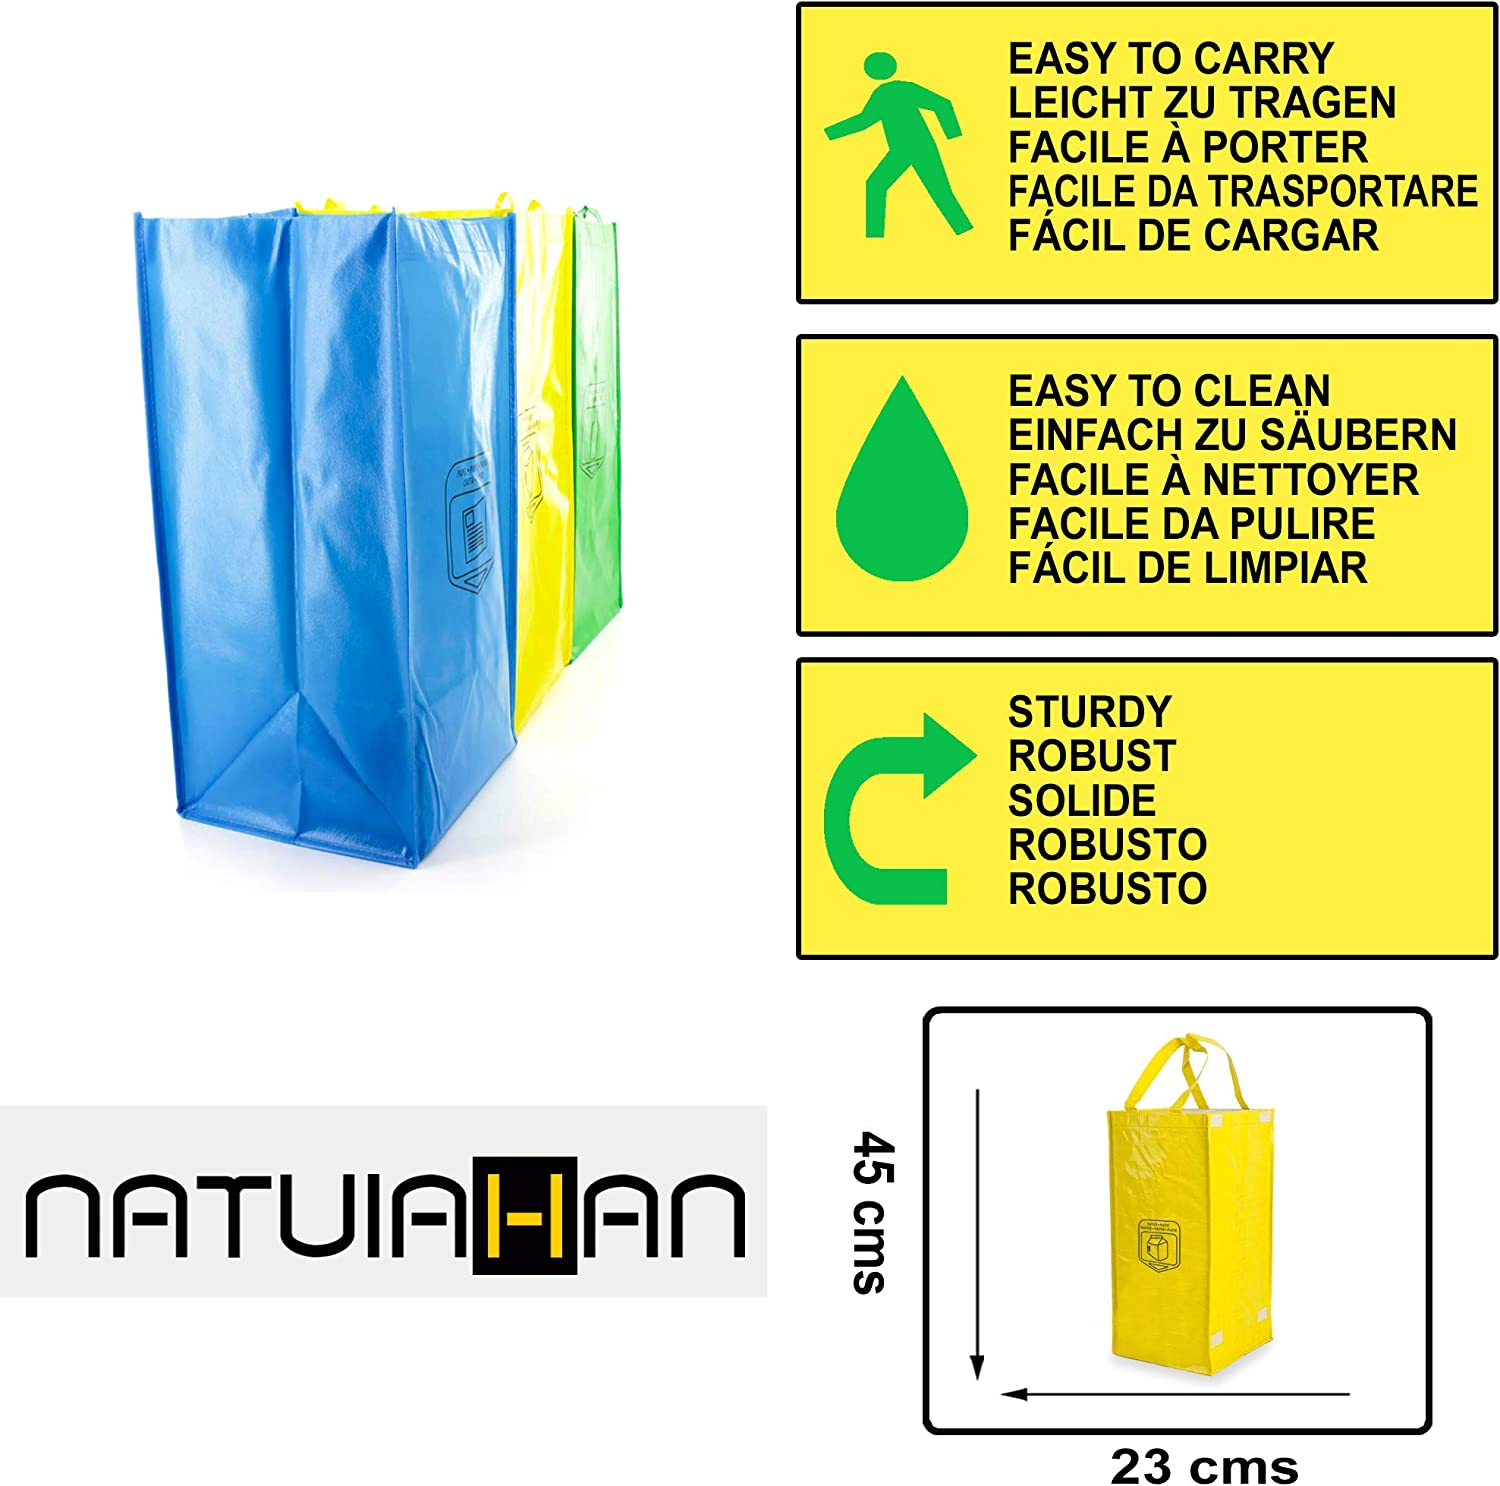 Practical and Easy to Clean and Carry. 3 Long Lasting Recycling Bags Natuiahan Pack Sturdy